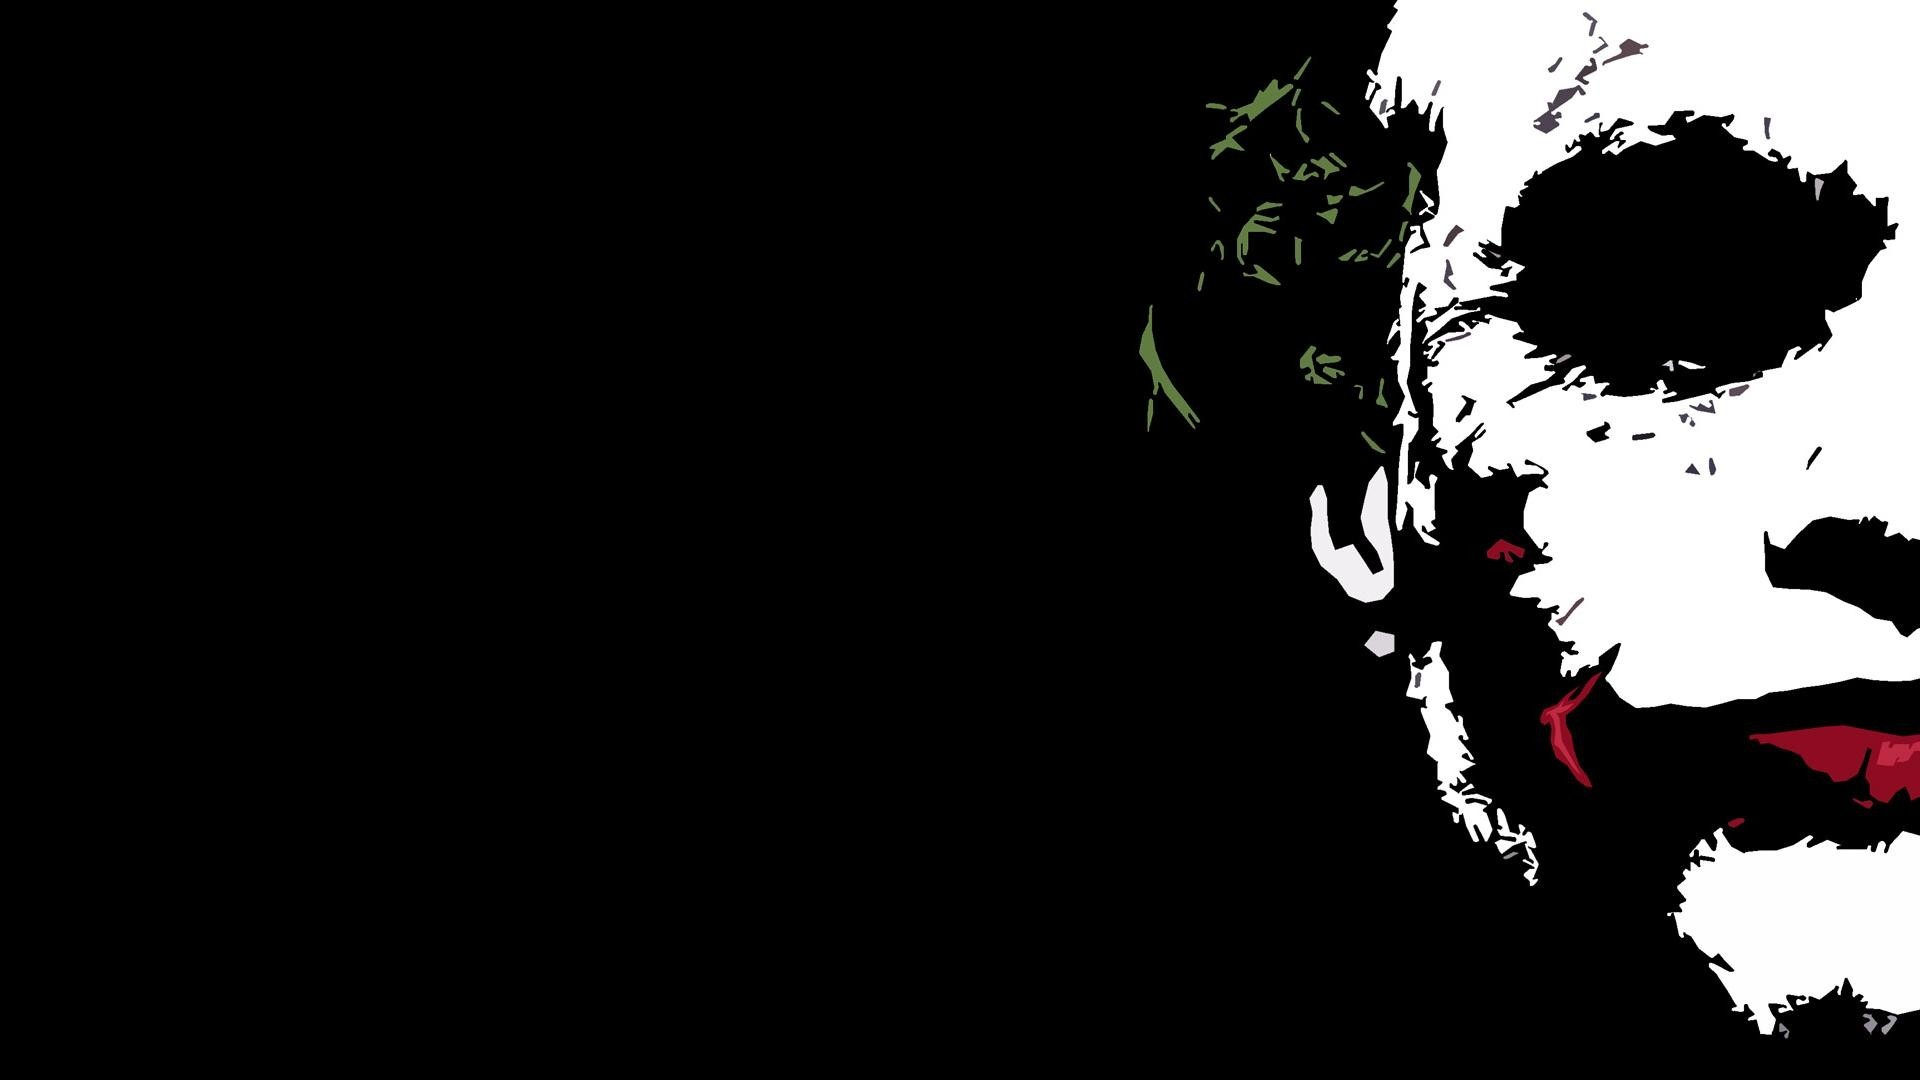 1920x1080 Batman The Joker Heath Ledger wallpaper |  | 193328 .